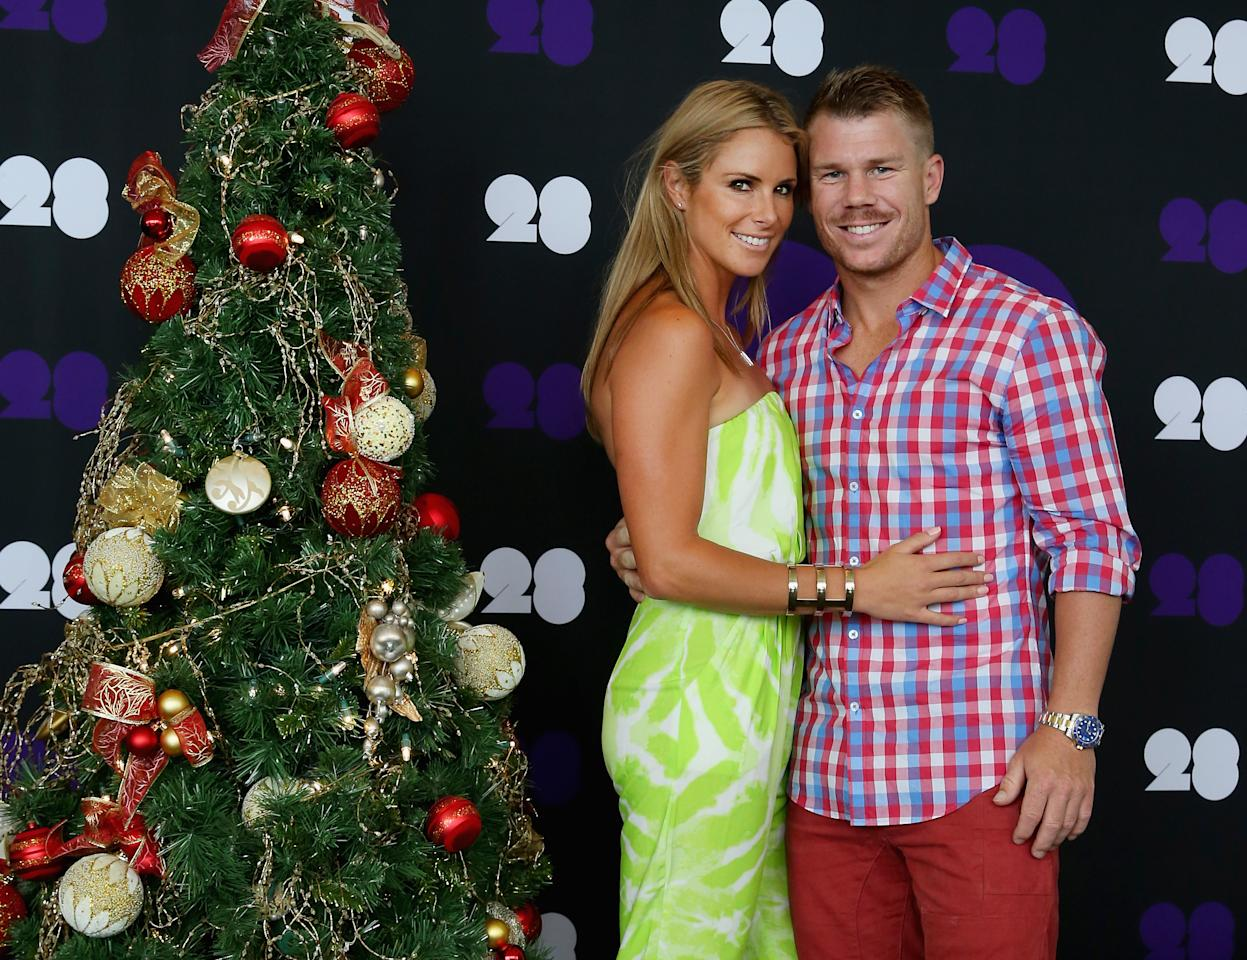 MELBOURNE, AUSTRALIA - DECEMBER 25:  David Warner of Australia and his partner Candice Falzon pose ahead of the Cricket Australia Christmas Day Lunch at Crown Metropol on December 25, 2013 in Melbourne, Australia.  (Photo by Scott Barbour/Getty Images)